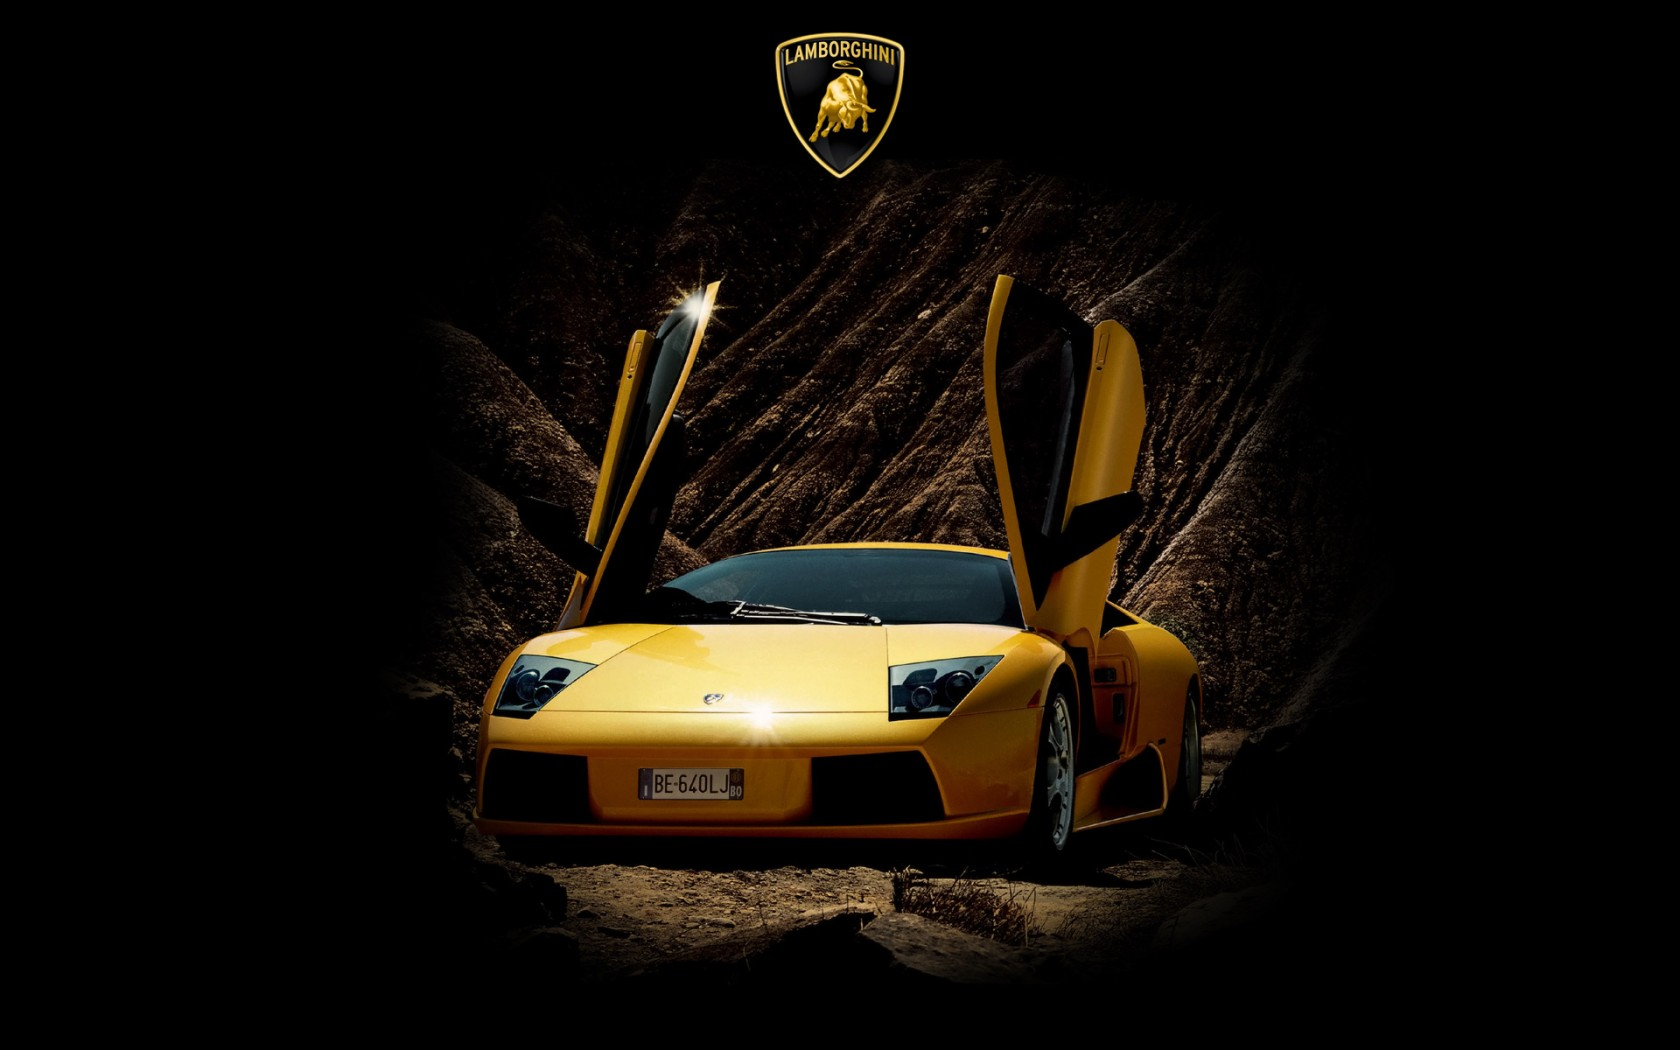 wallpaper hd lamborghini logo wallpaper hd lamborghini tyre wallpaper 1680x1050